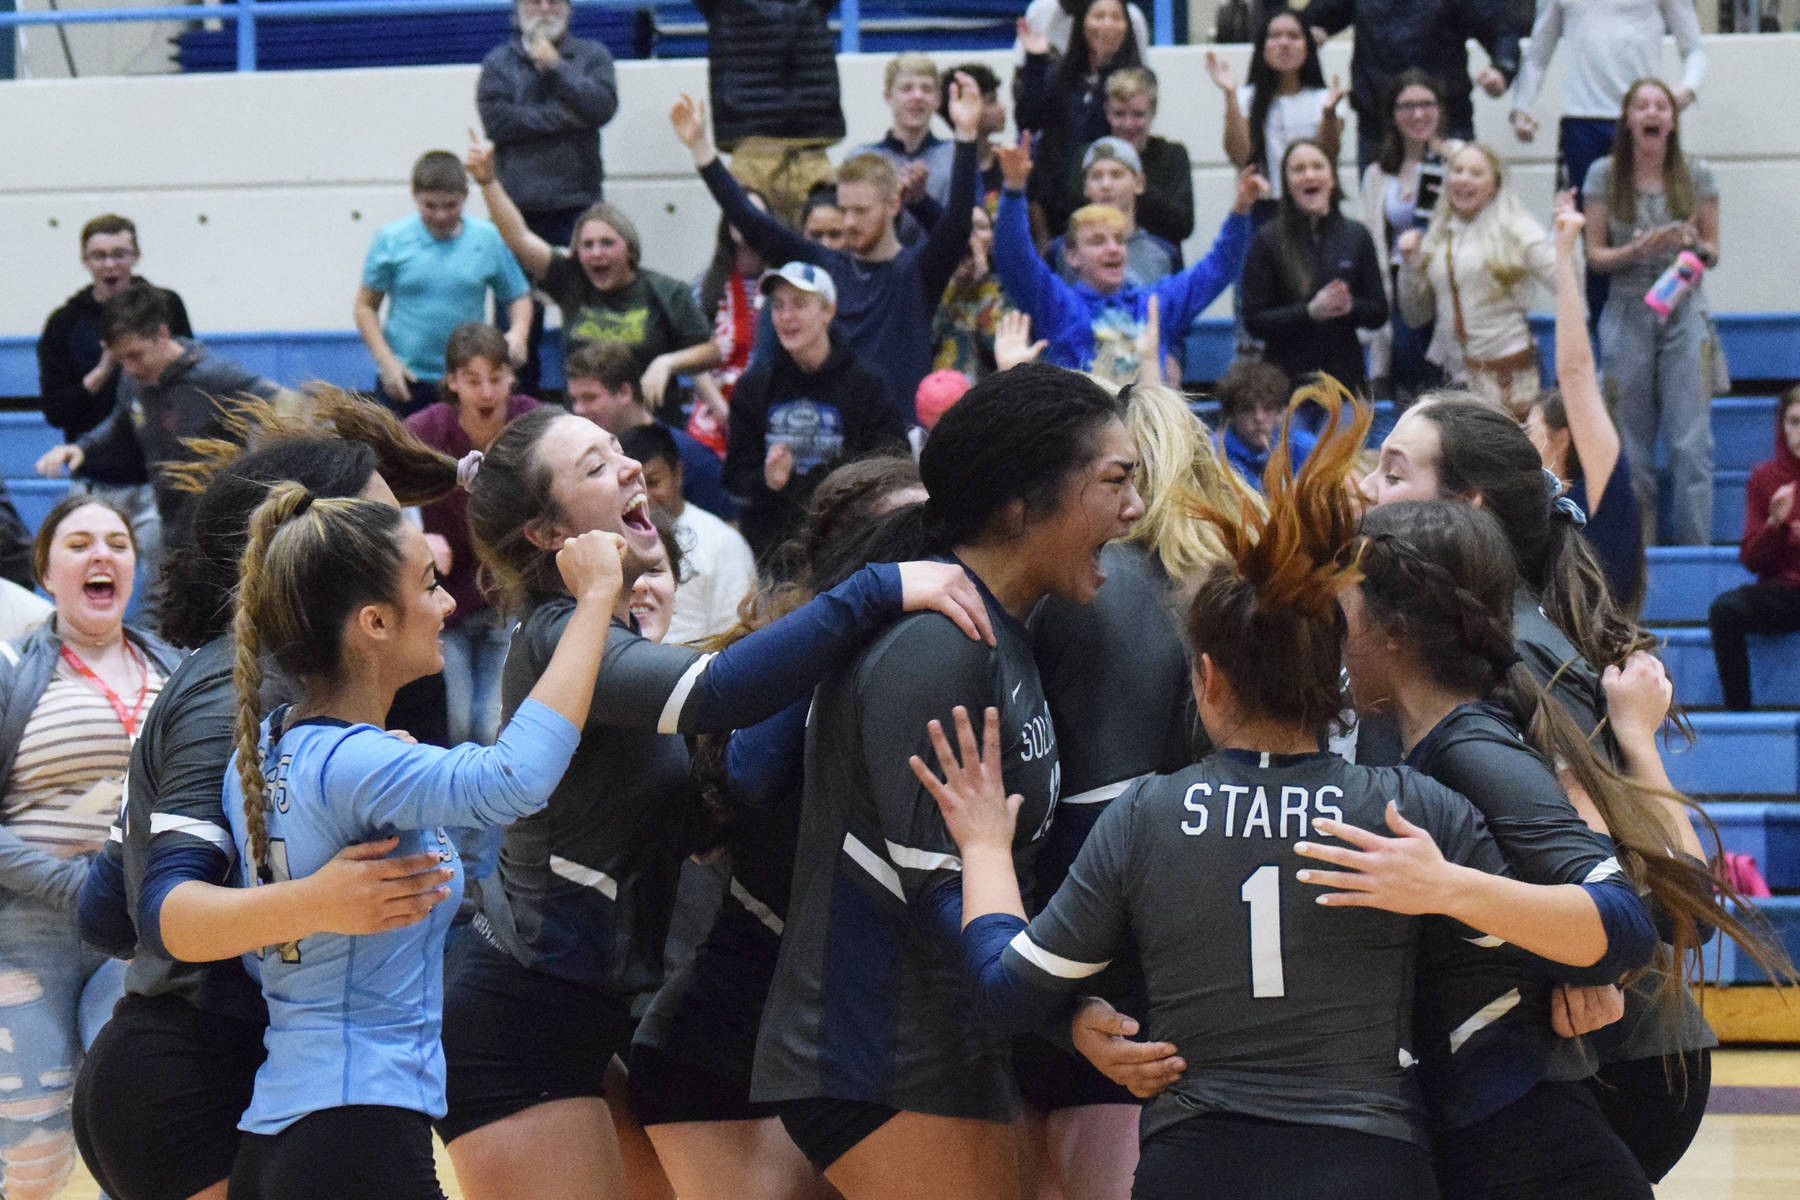 The Soldotna volleyball team celebrates on the floor after beating Wasilla Thursday, Nov. 7, 2019, at the Northern Lights Conference tournament at Soldotna High School in Soldotna, Alaska. (Photo by Joey Klecka/Peninsula Clarion)